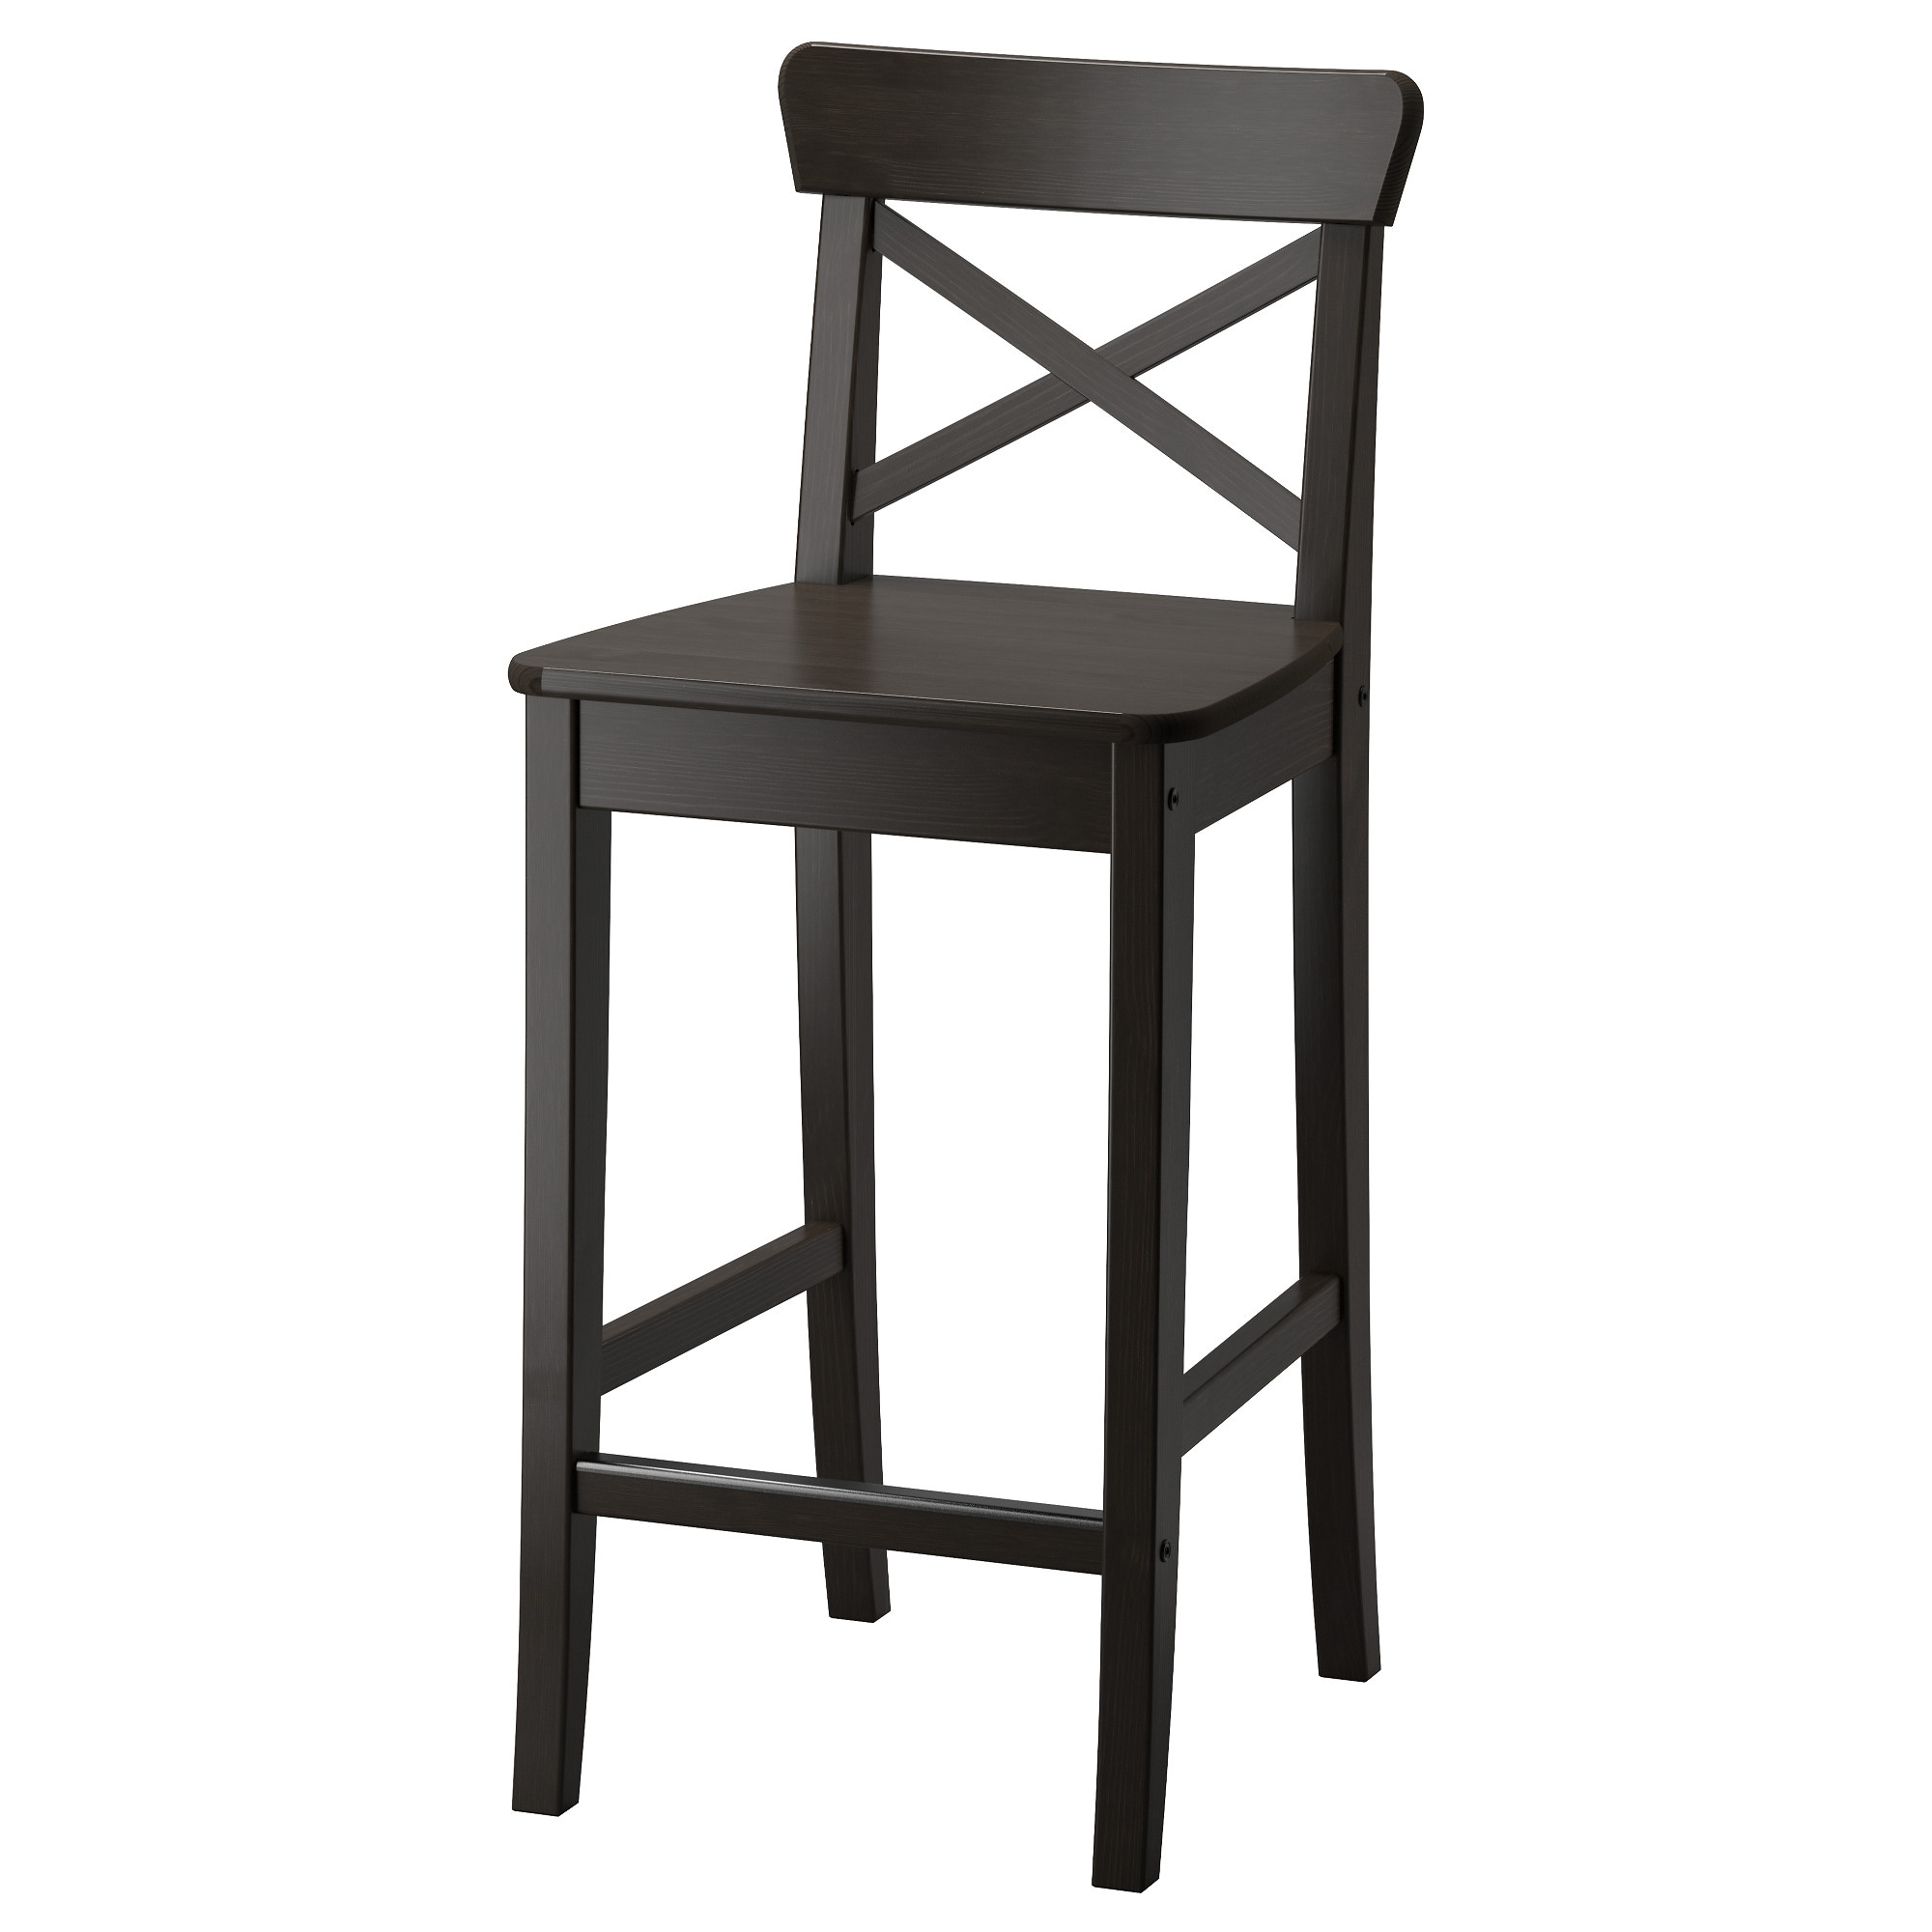 INGOLF bar stool with backrest, brown-black Tested for: 220 lb Width: